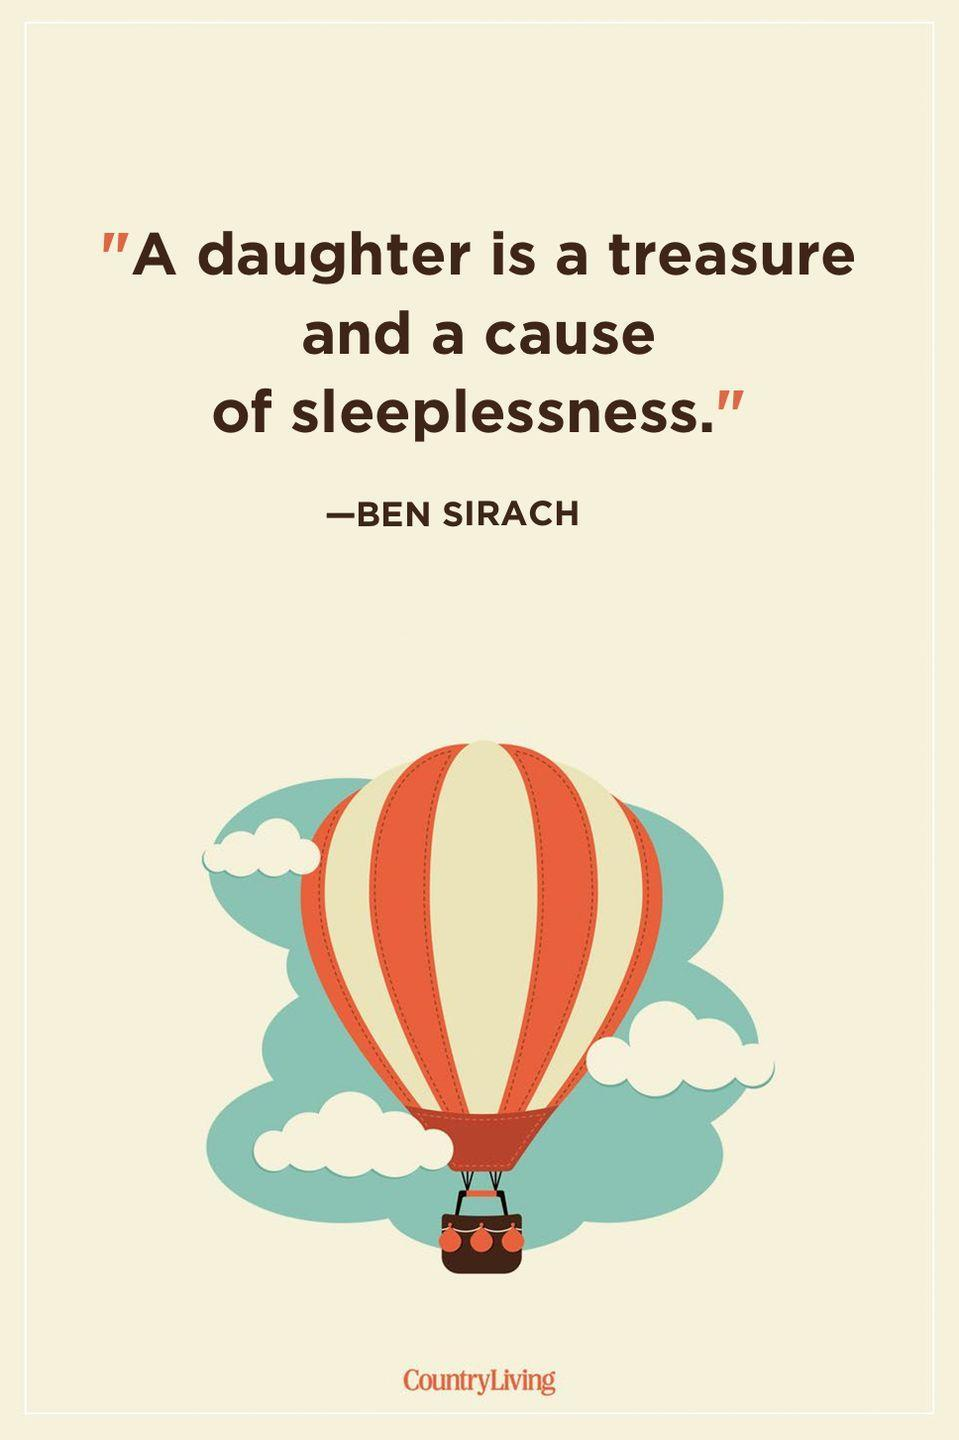 "<p>""A daughter is a treasure and a cause of sleeplessness.""</p>"